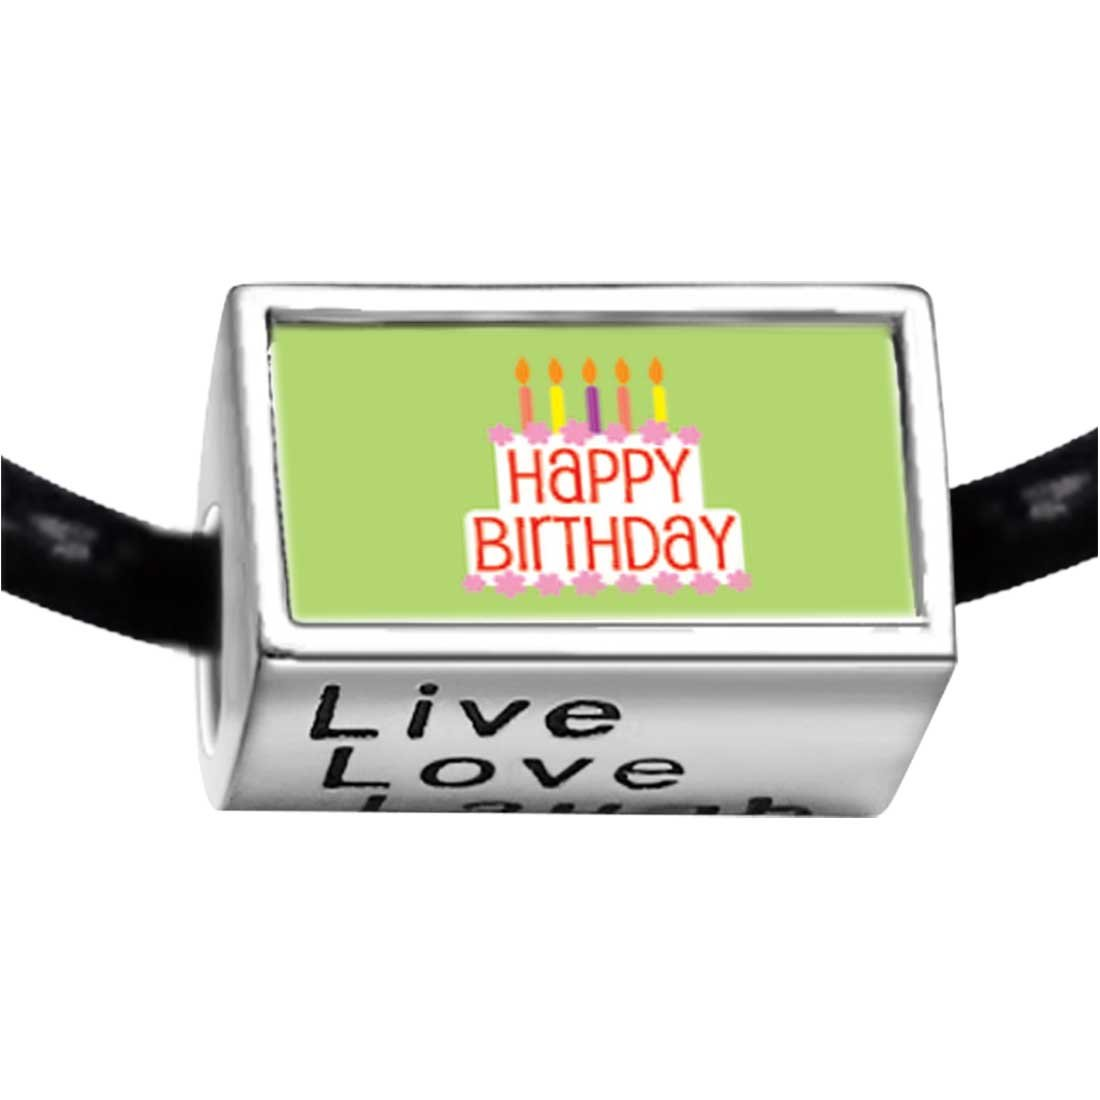 5baaeb20aacf5 Amazon.com: GiftJewelryShop Silver Plated Happy Birthday Green Photo Live  Love Laugh Charm Beads Bracelets European Bracelets: Jewelry